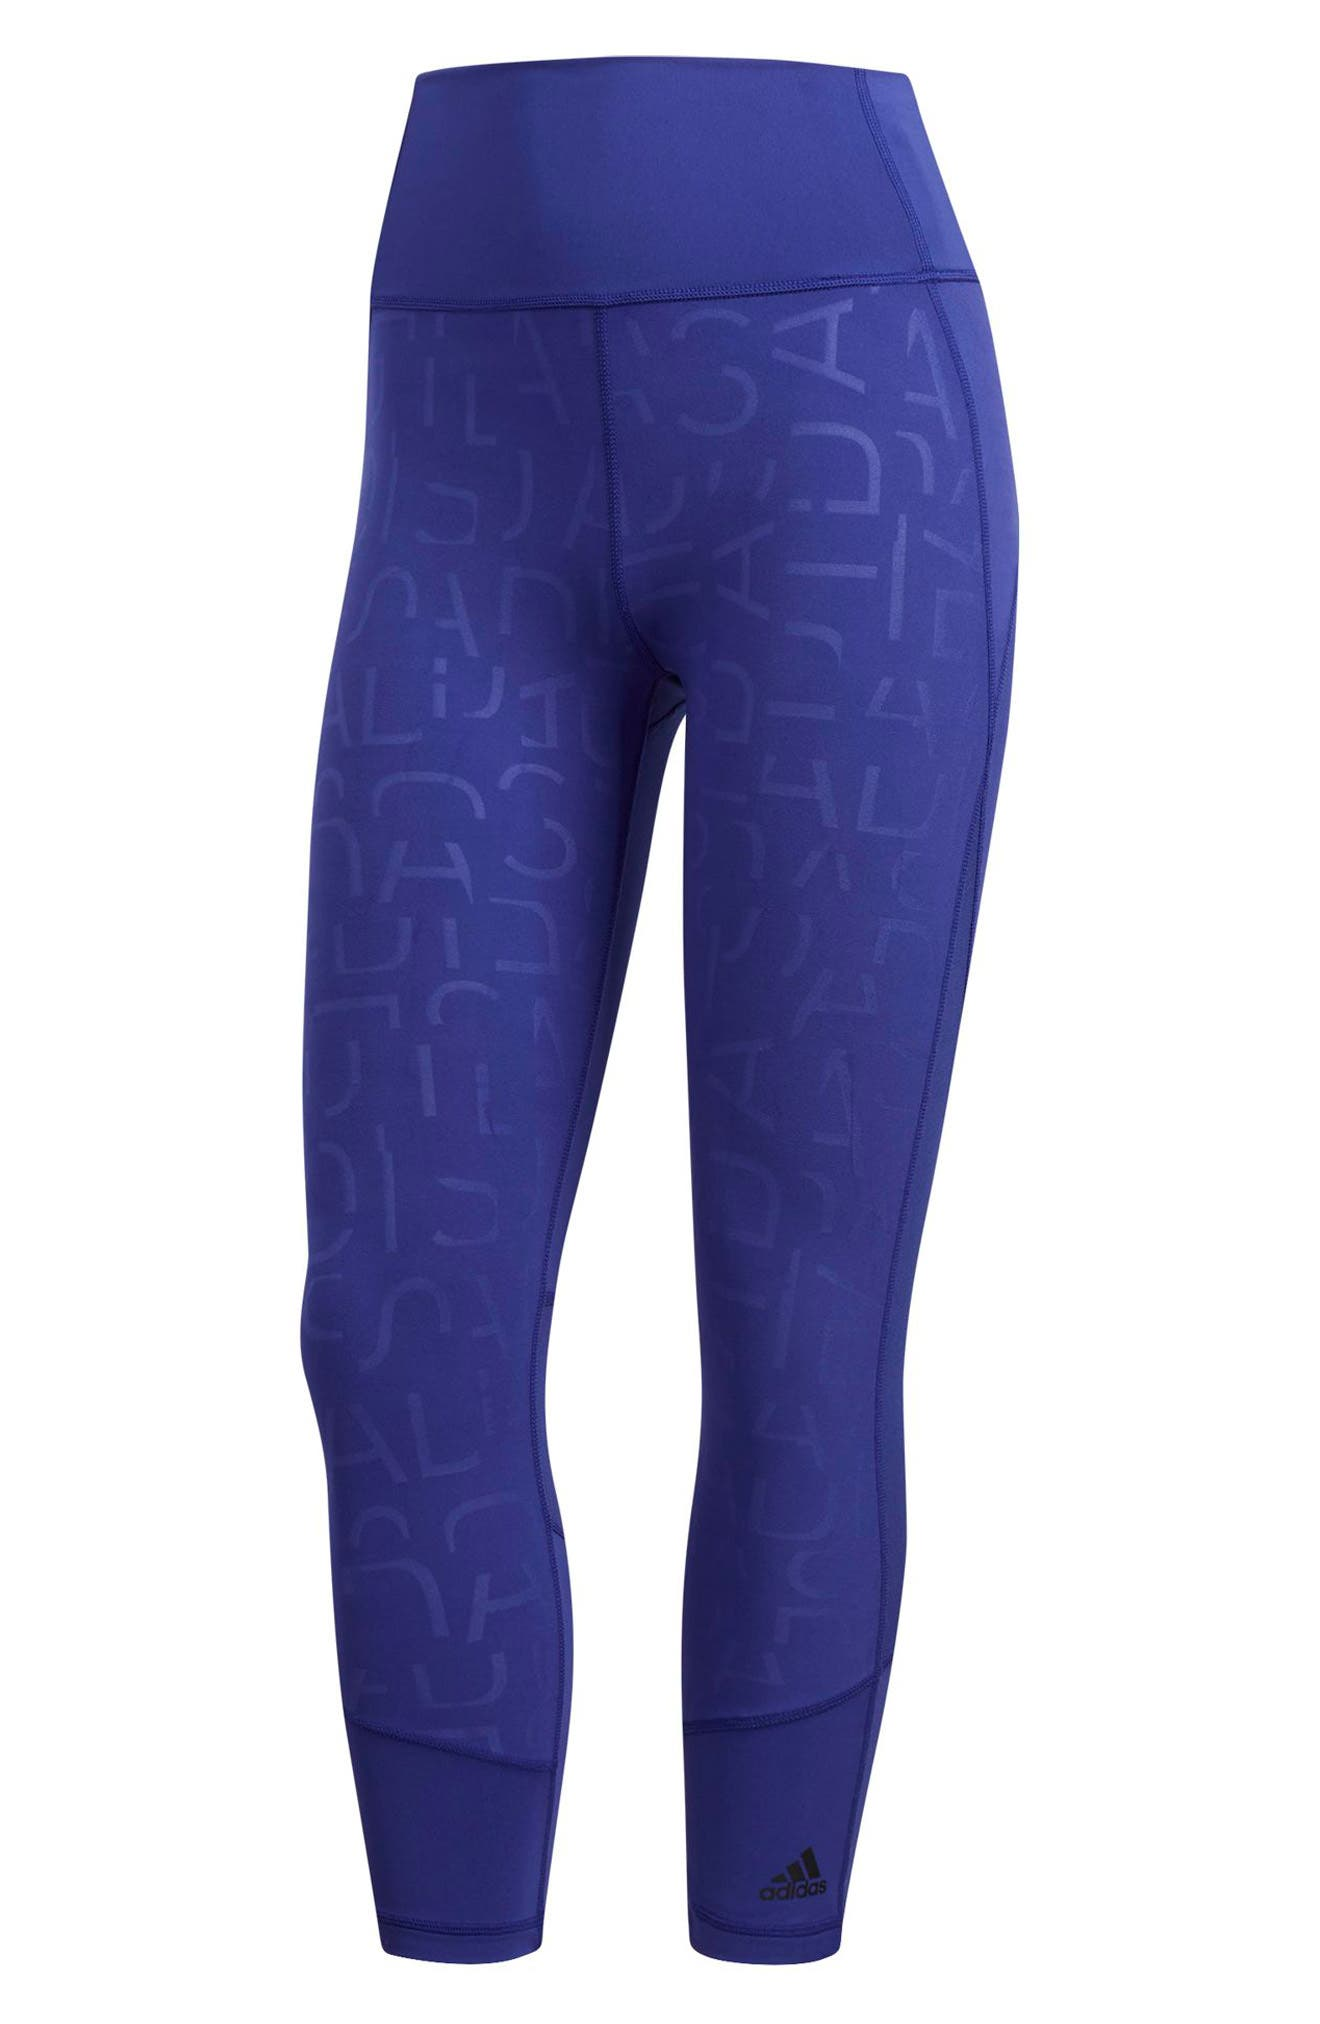 Adihack Crop Tights,                             Alternate thumbnail 6, color,                             500